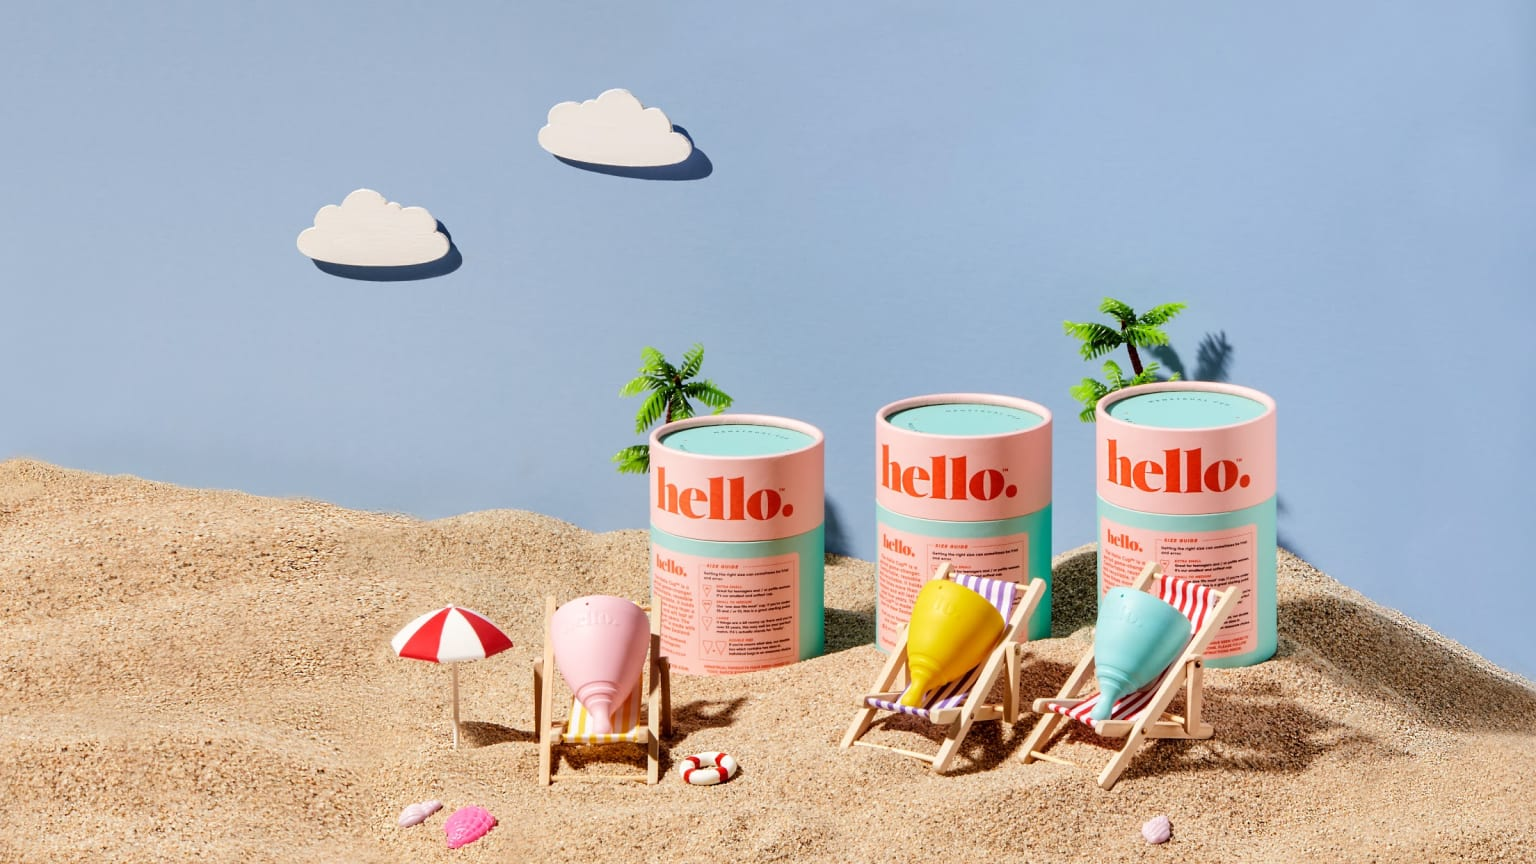 The Hello Cup for Catalog Brands